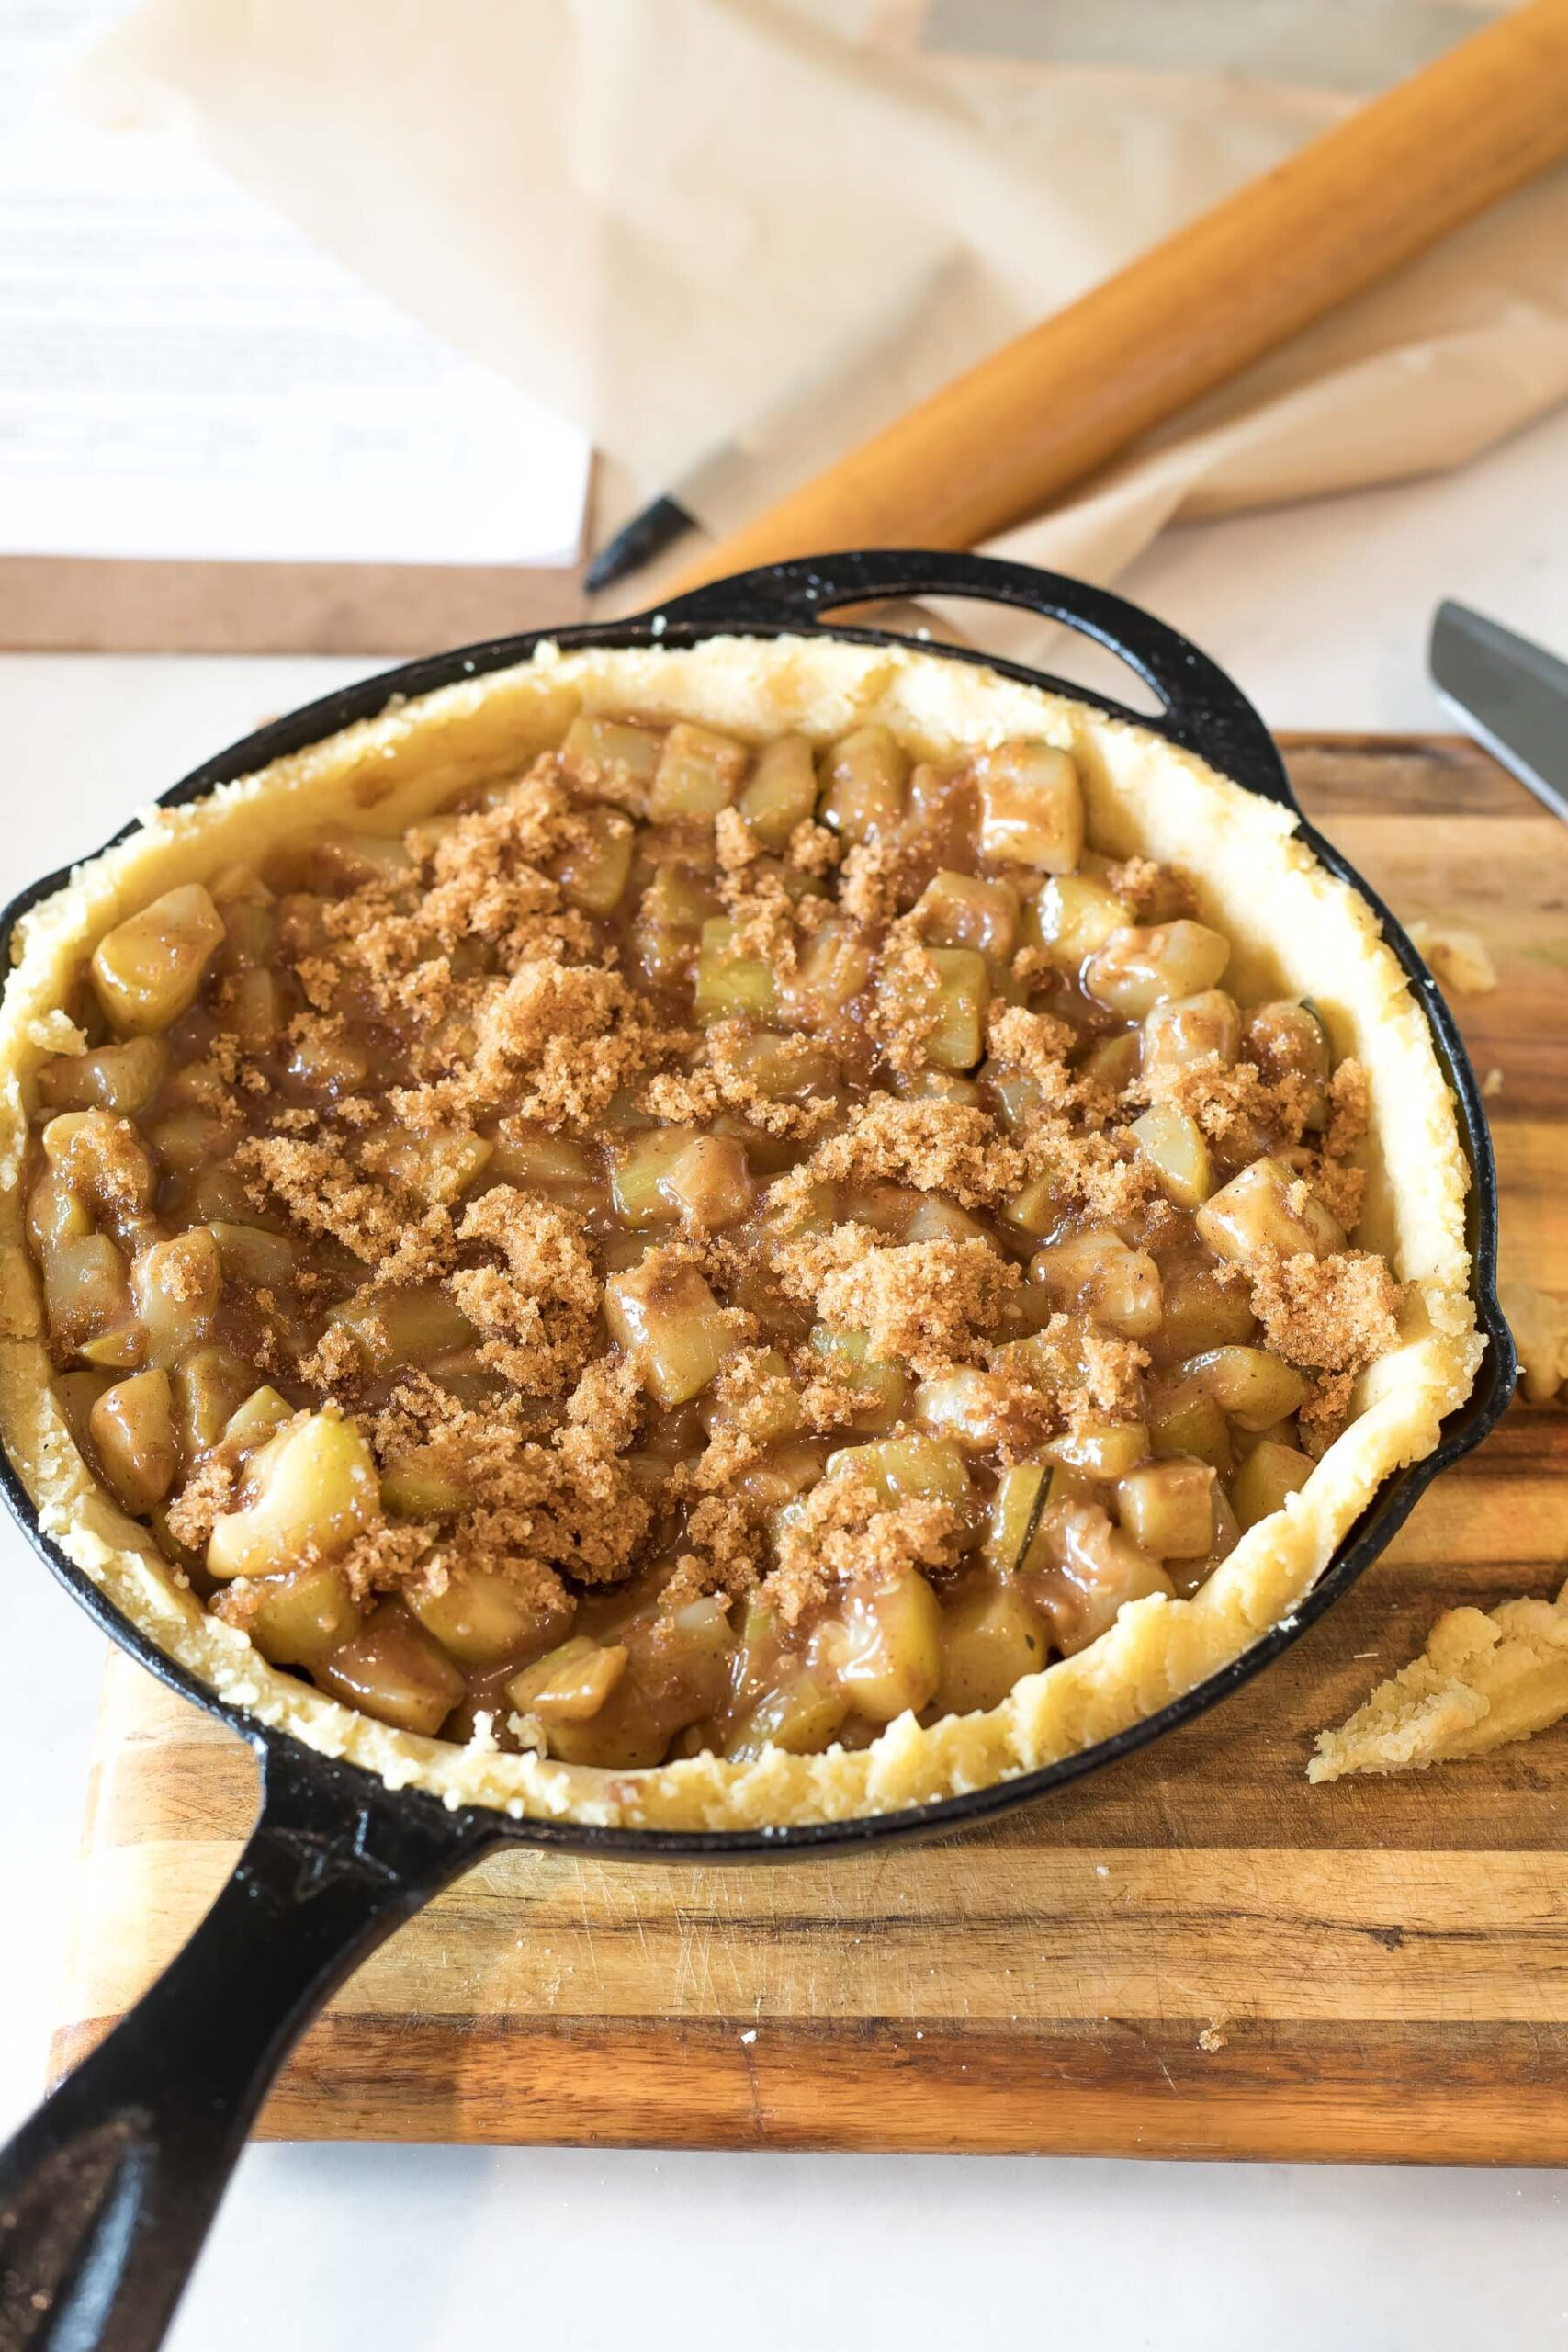 Keto Apple Pie with zucchini filling before baking